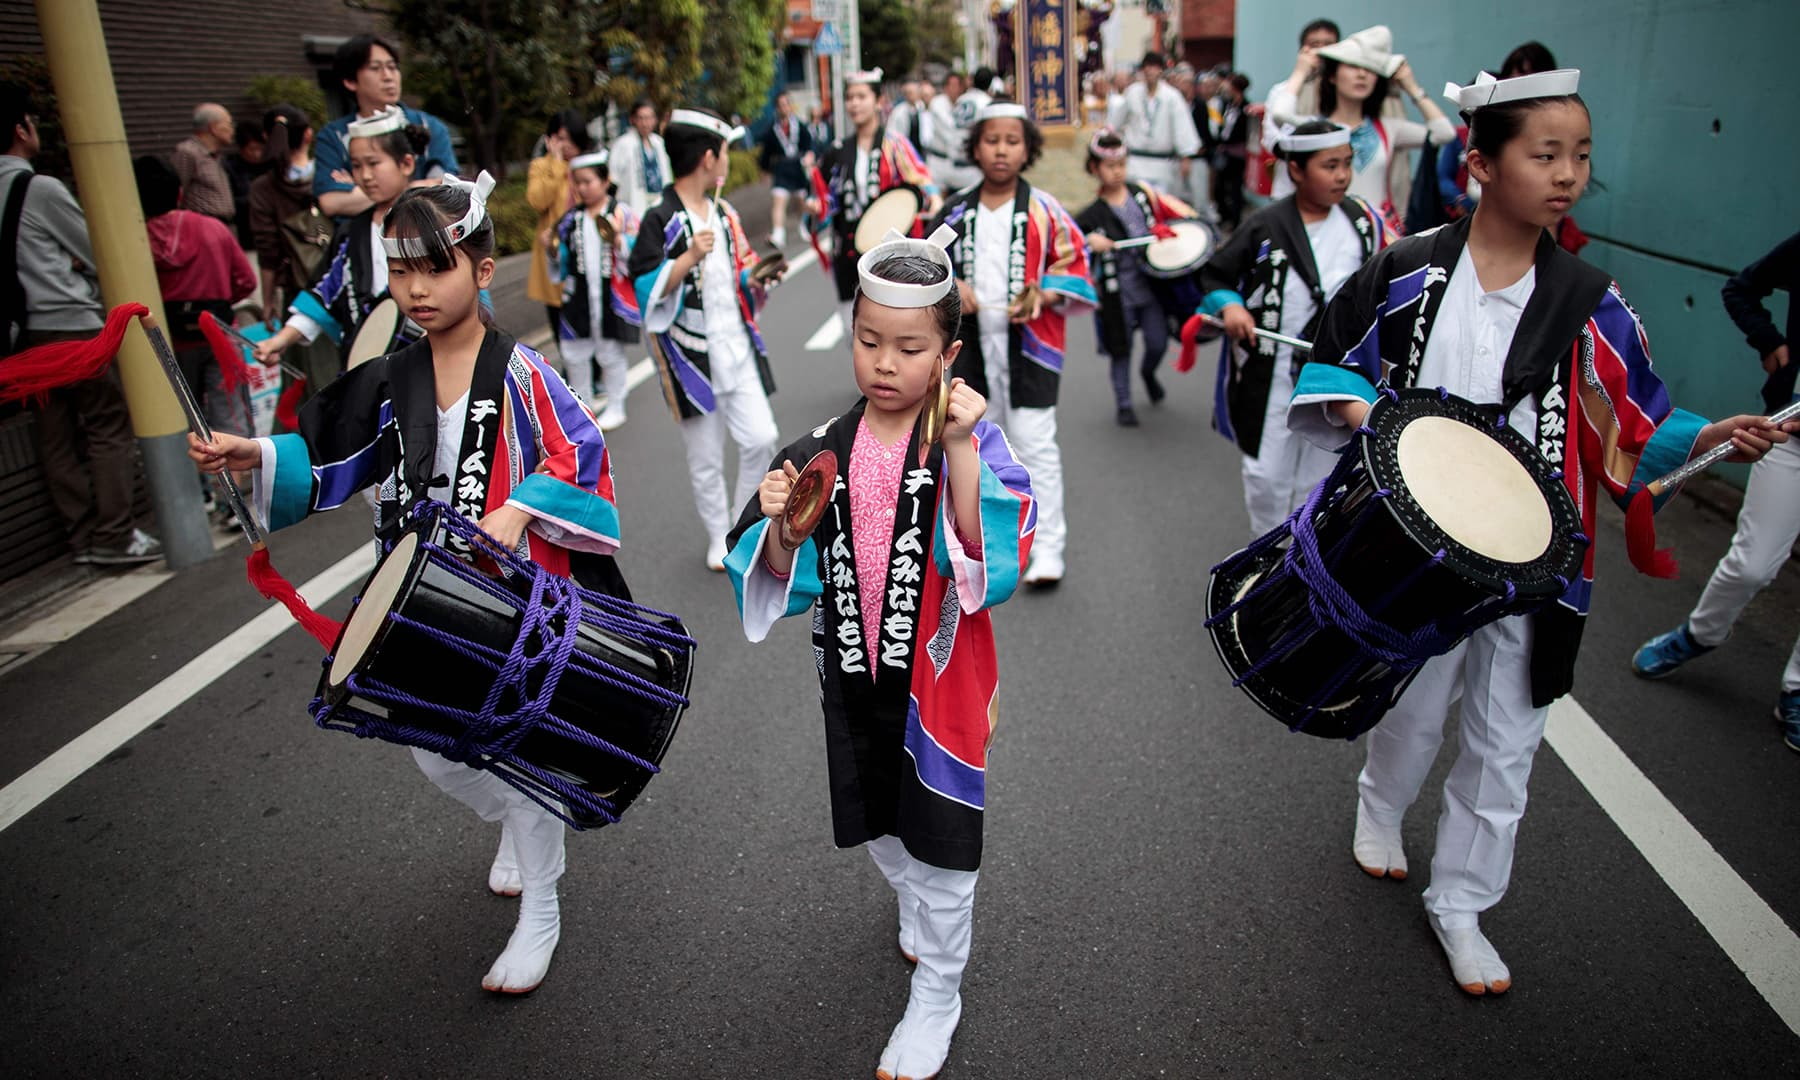 Children play drums during a ceremony to celebrate the accession of the new emperor to the throne in the Nakanobu neighbourood of Tokyo on May 1, 2019. — AFP